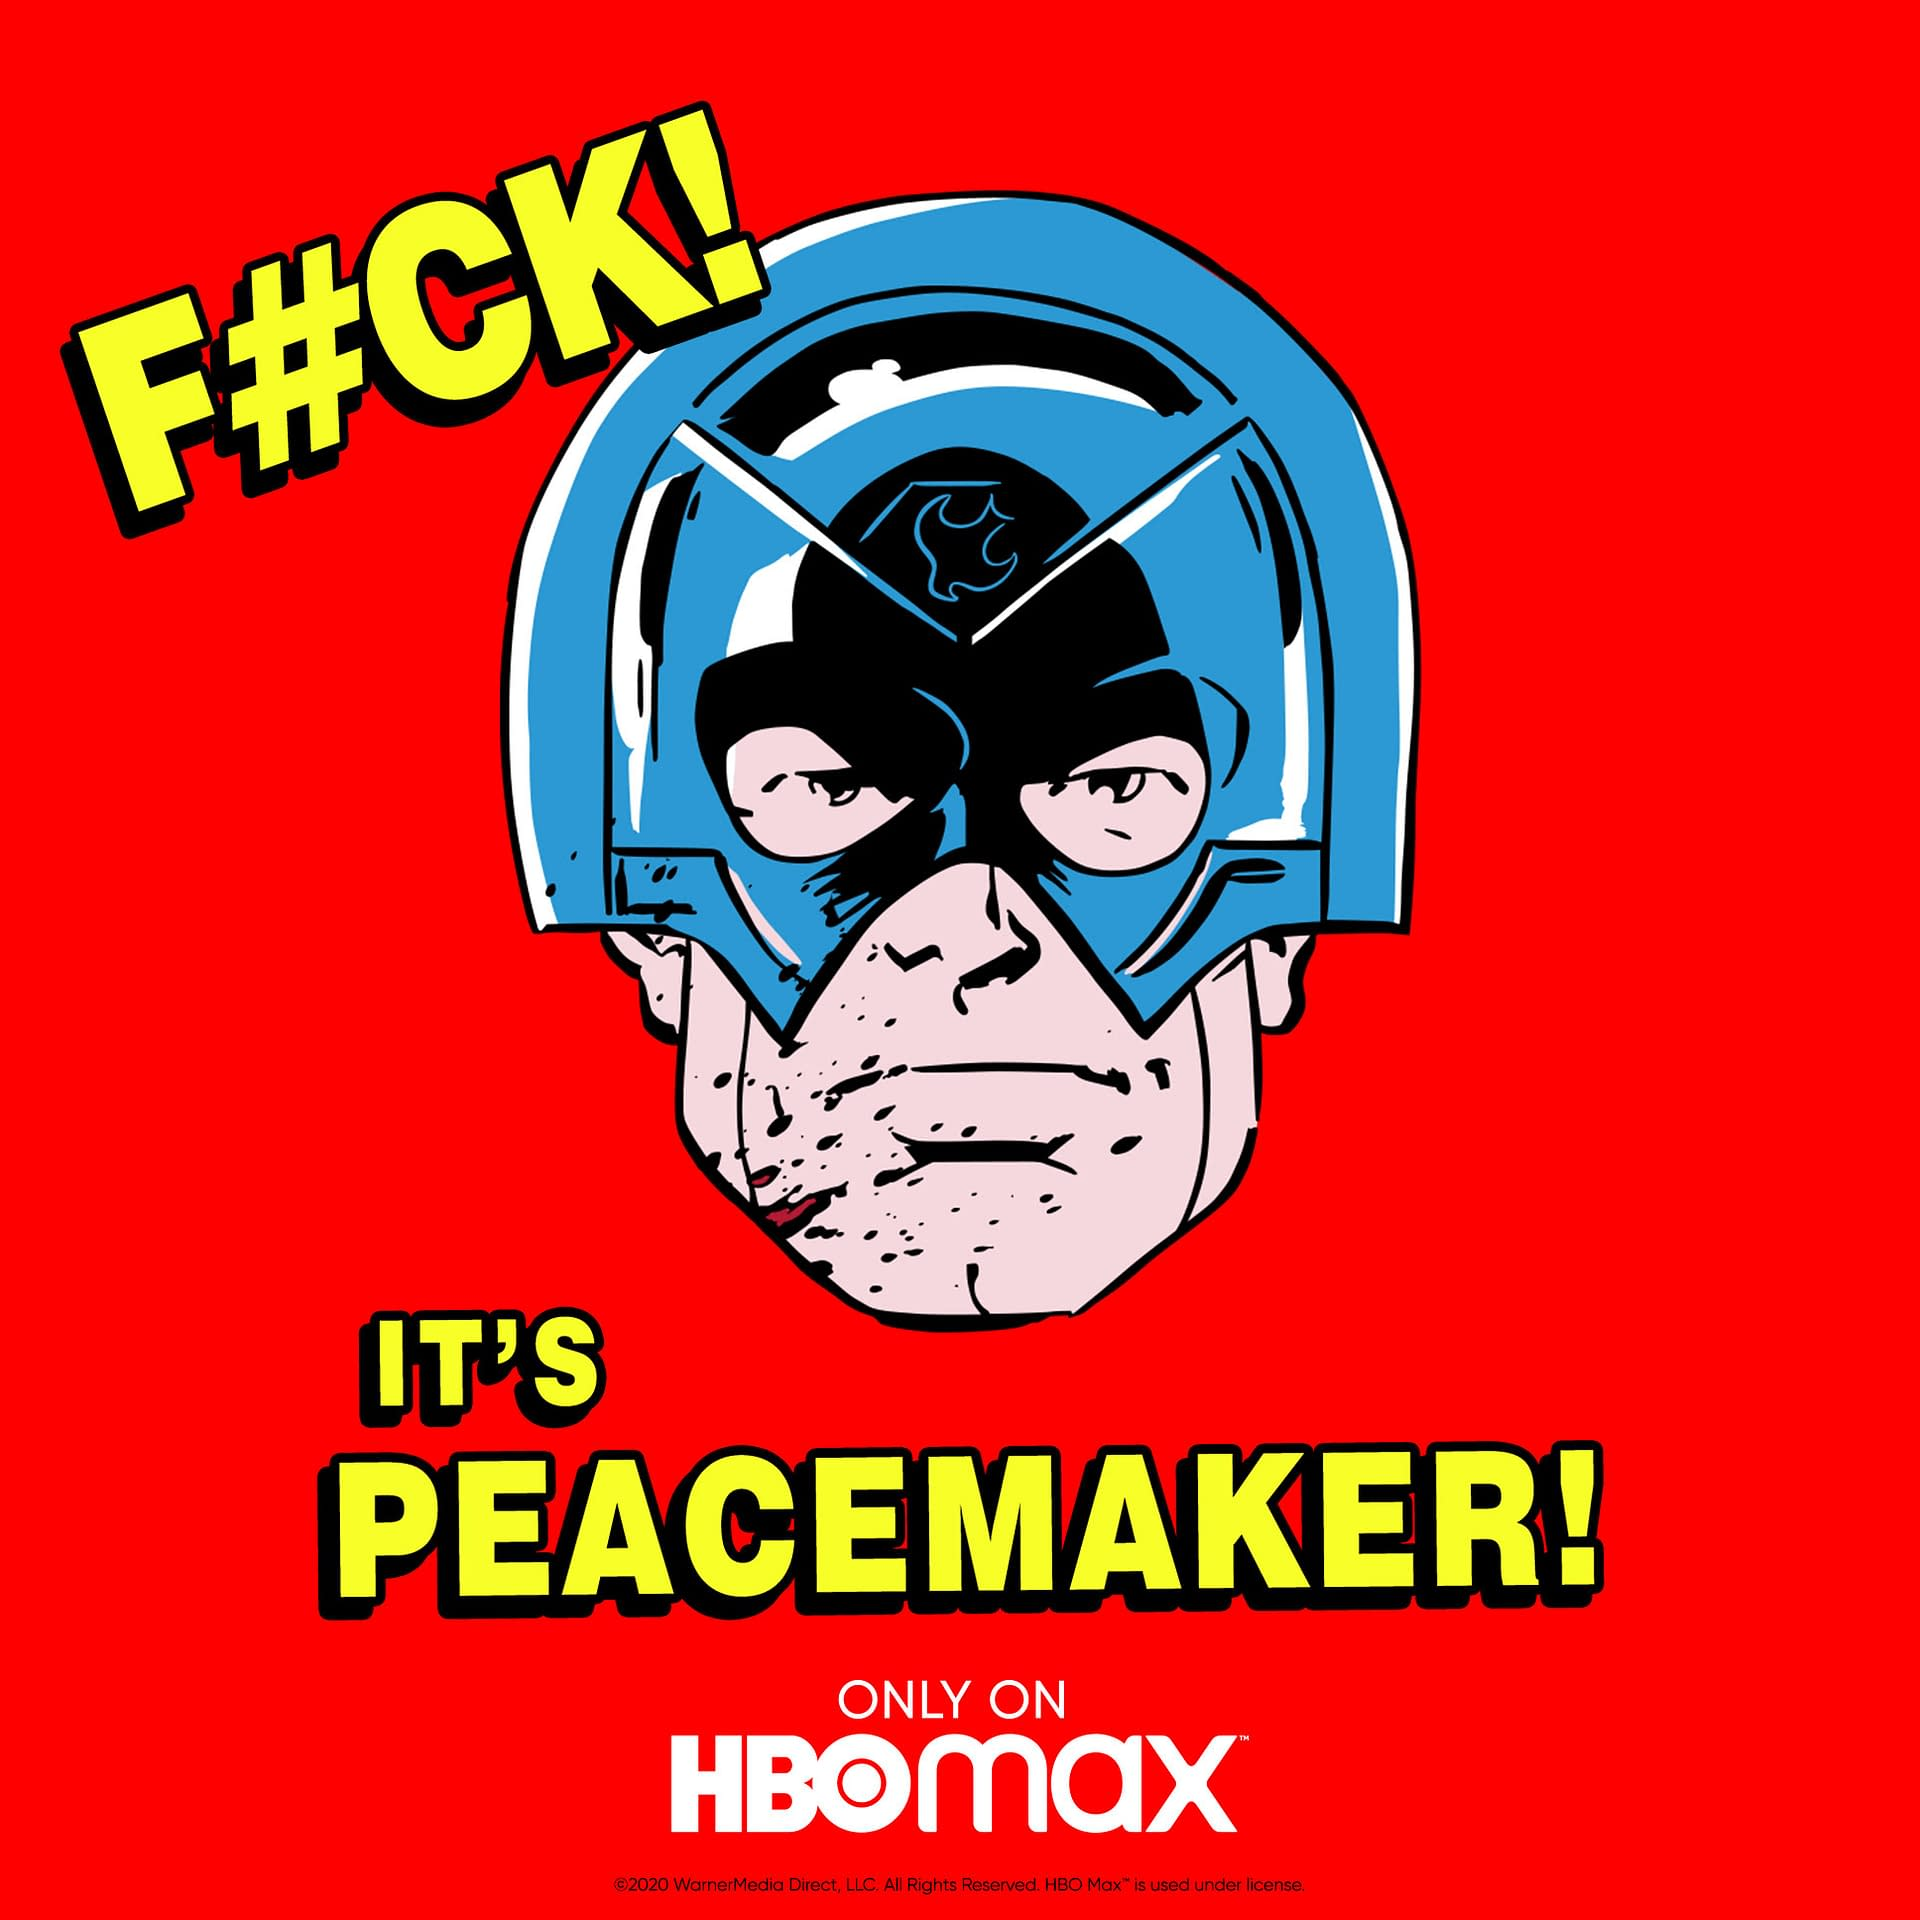 HBO Max Rips Off John Byrne and Marvel For Suicide Squad's Peacemaker